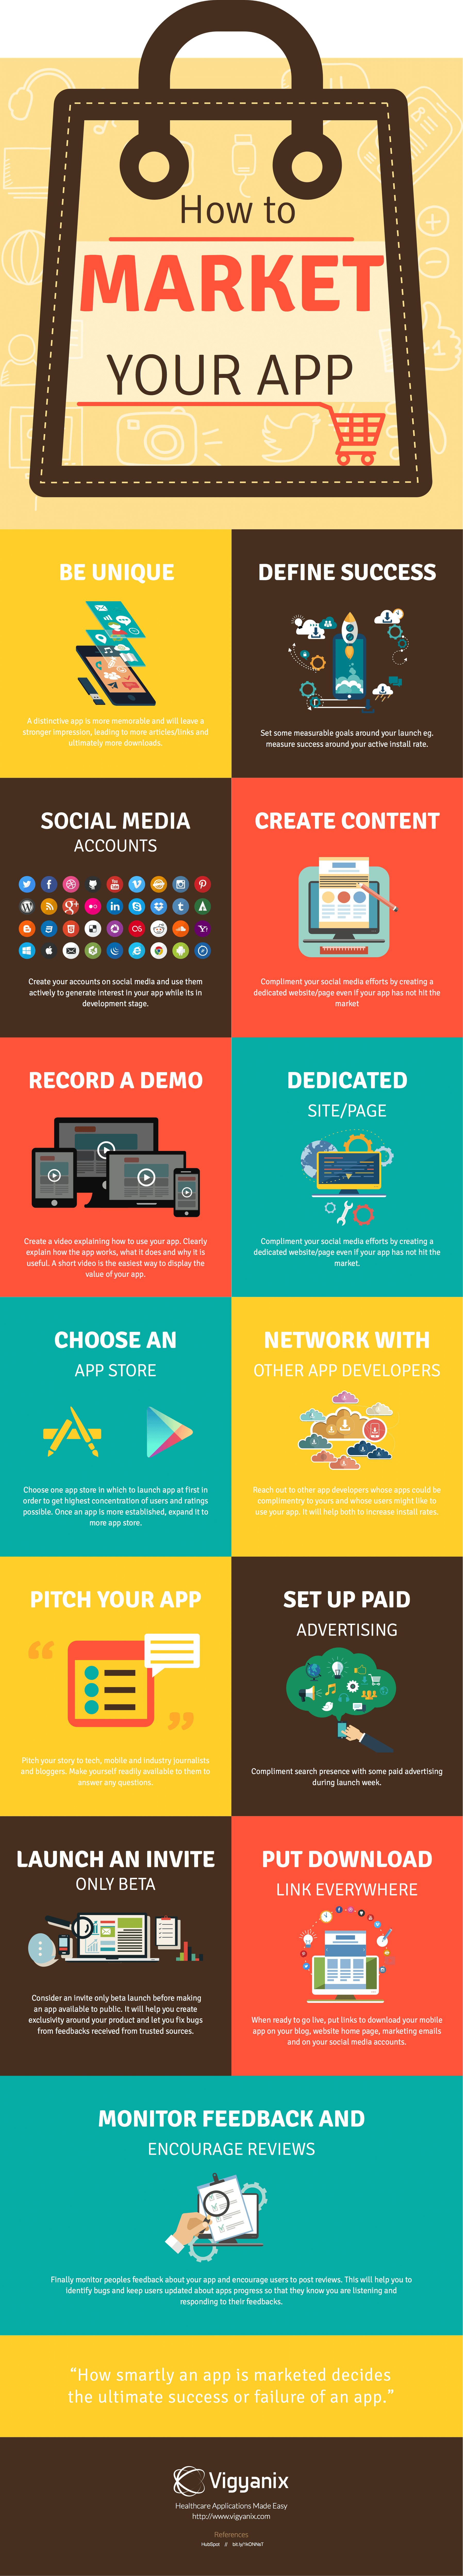 tactics to market your app - infographic